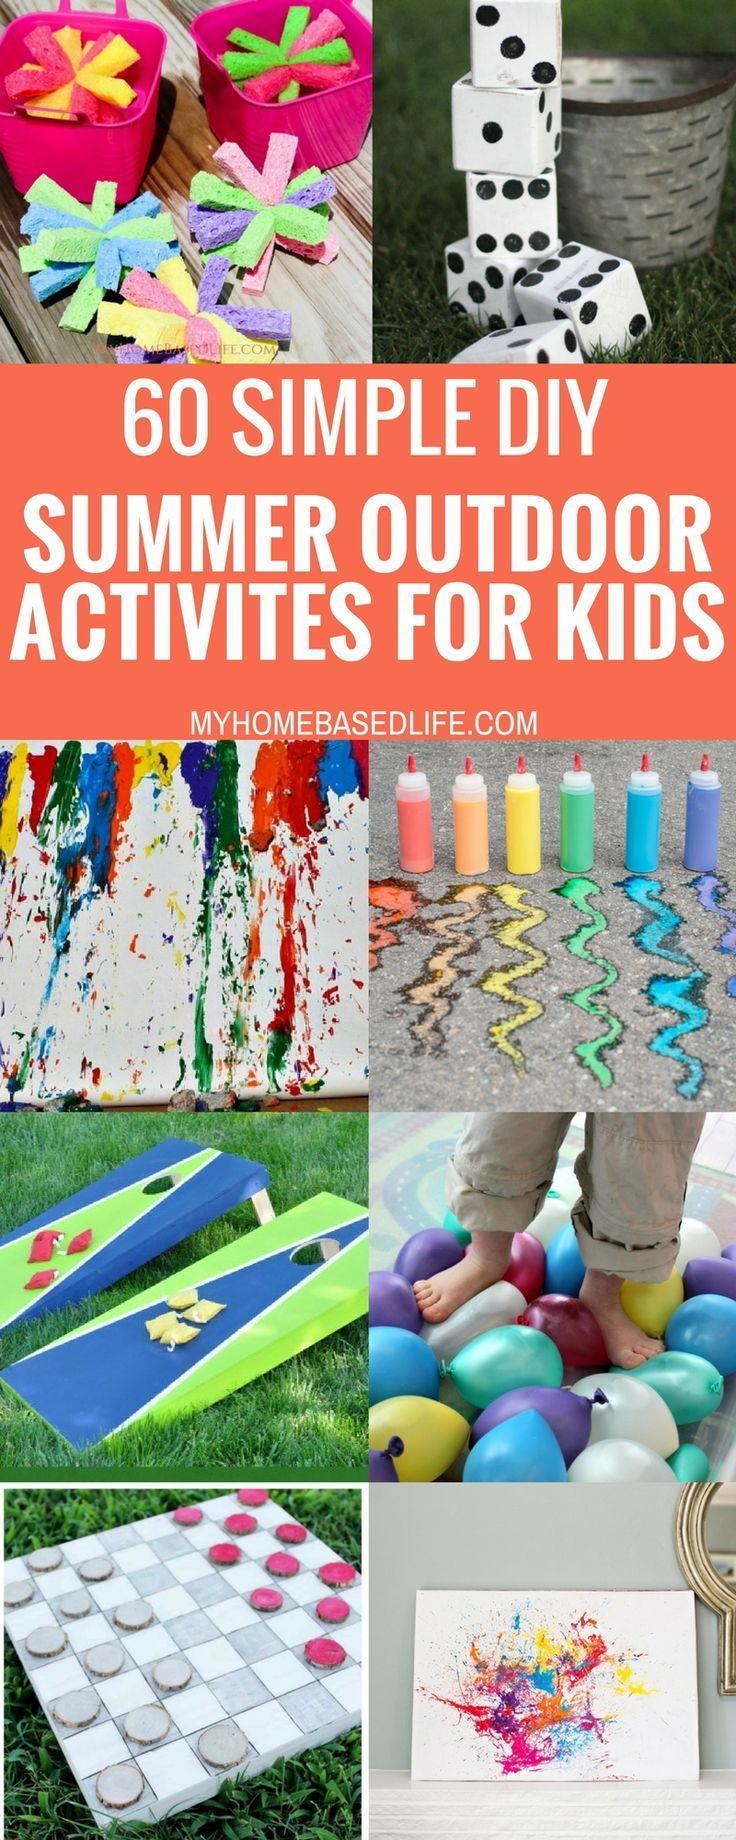 These 60 Swatches Of Kylie Cosmetic S Lip Kit Will Make: With These 60 Summer Outdoor Activities For Kids, You Will